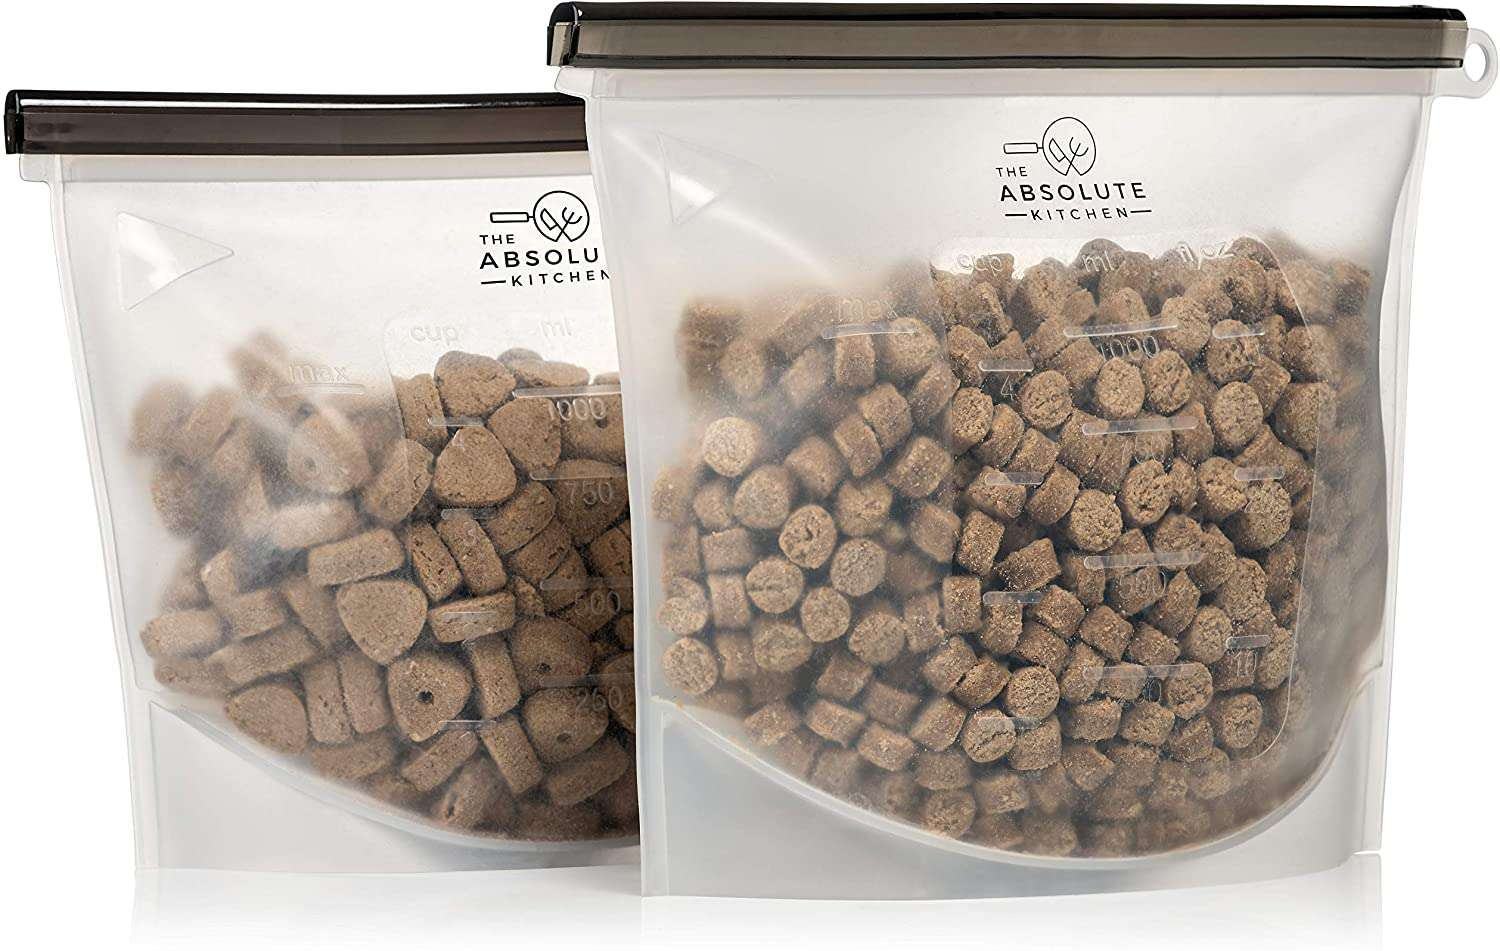 The Absolute Kitchen Reusable Airtight Pet Food Storage Container